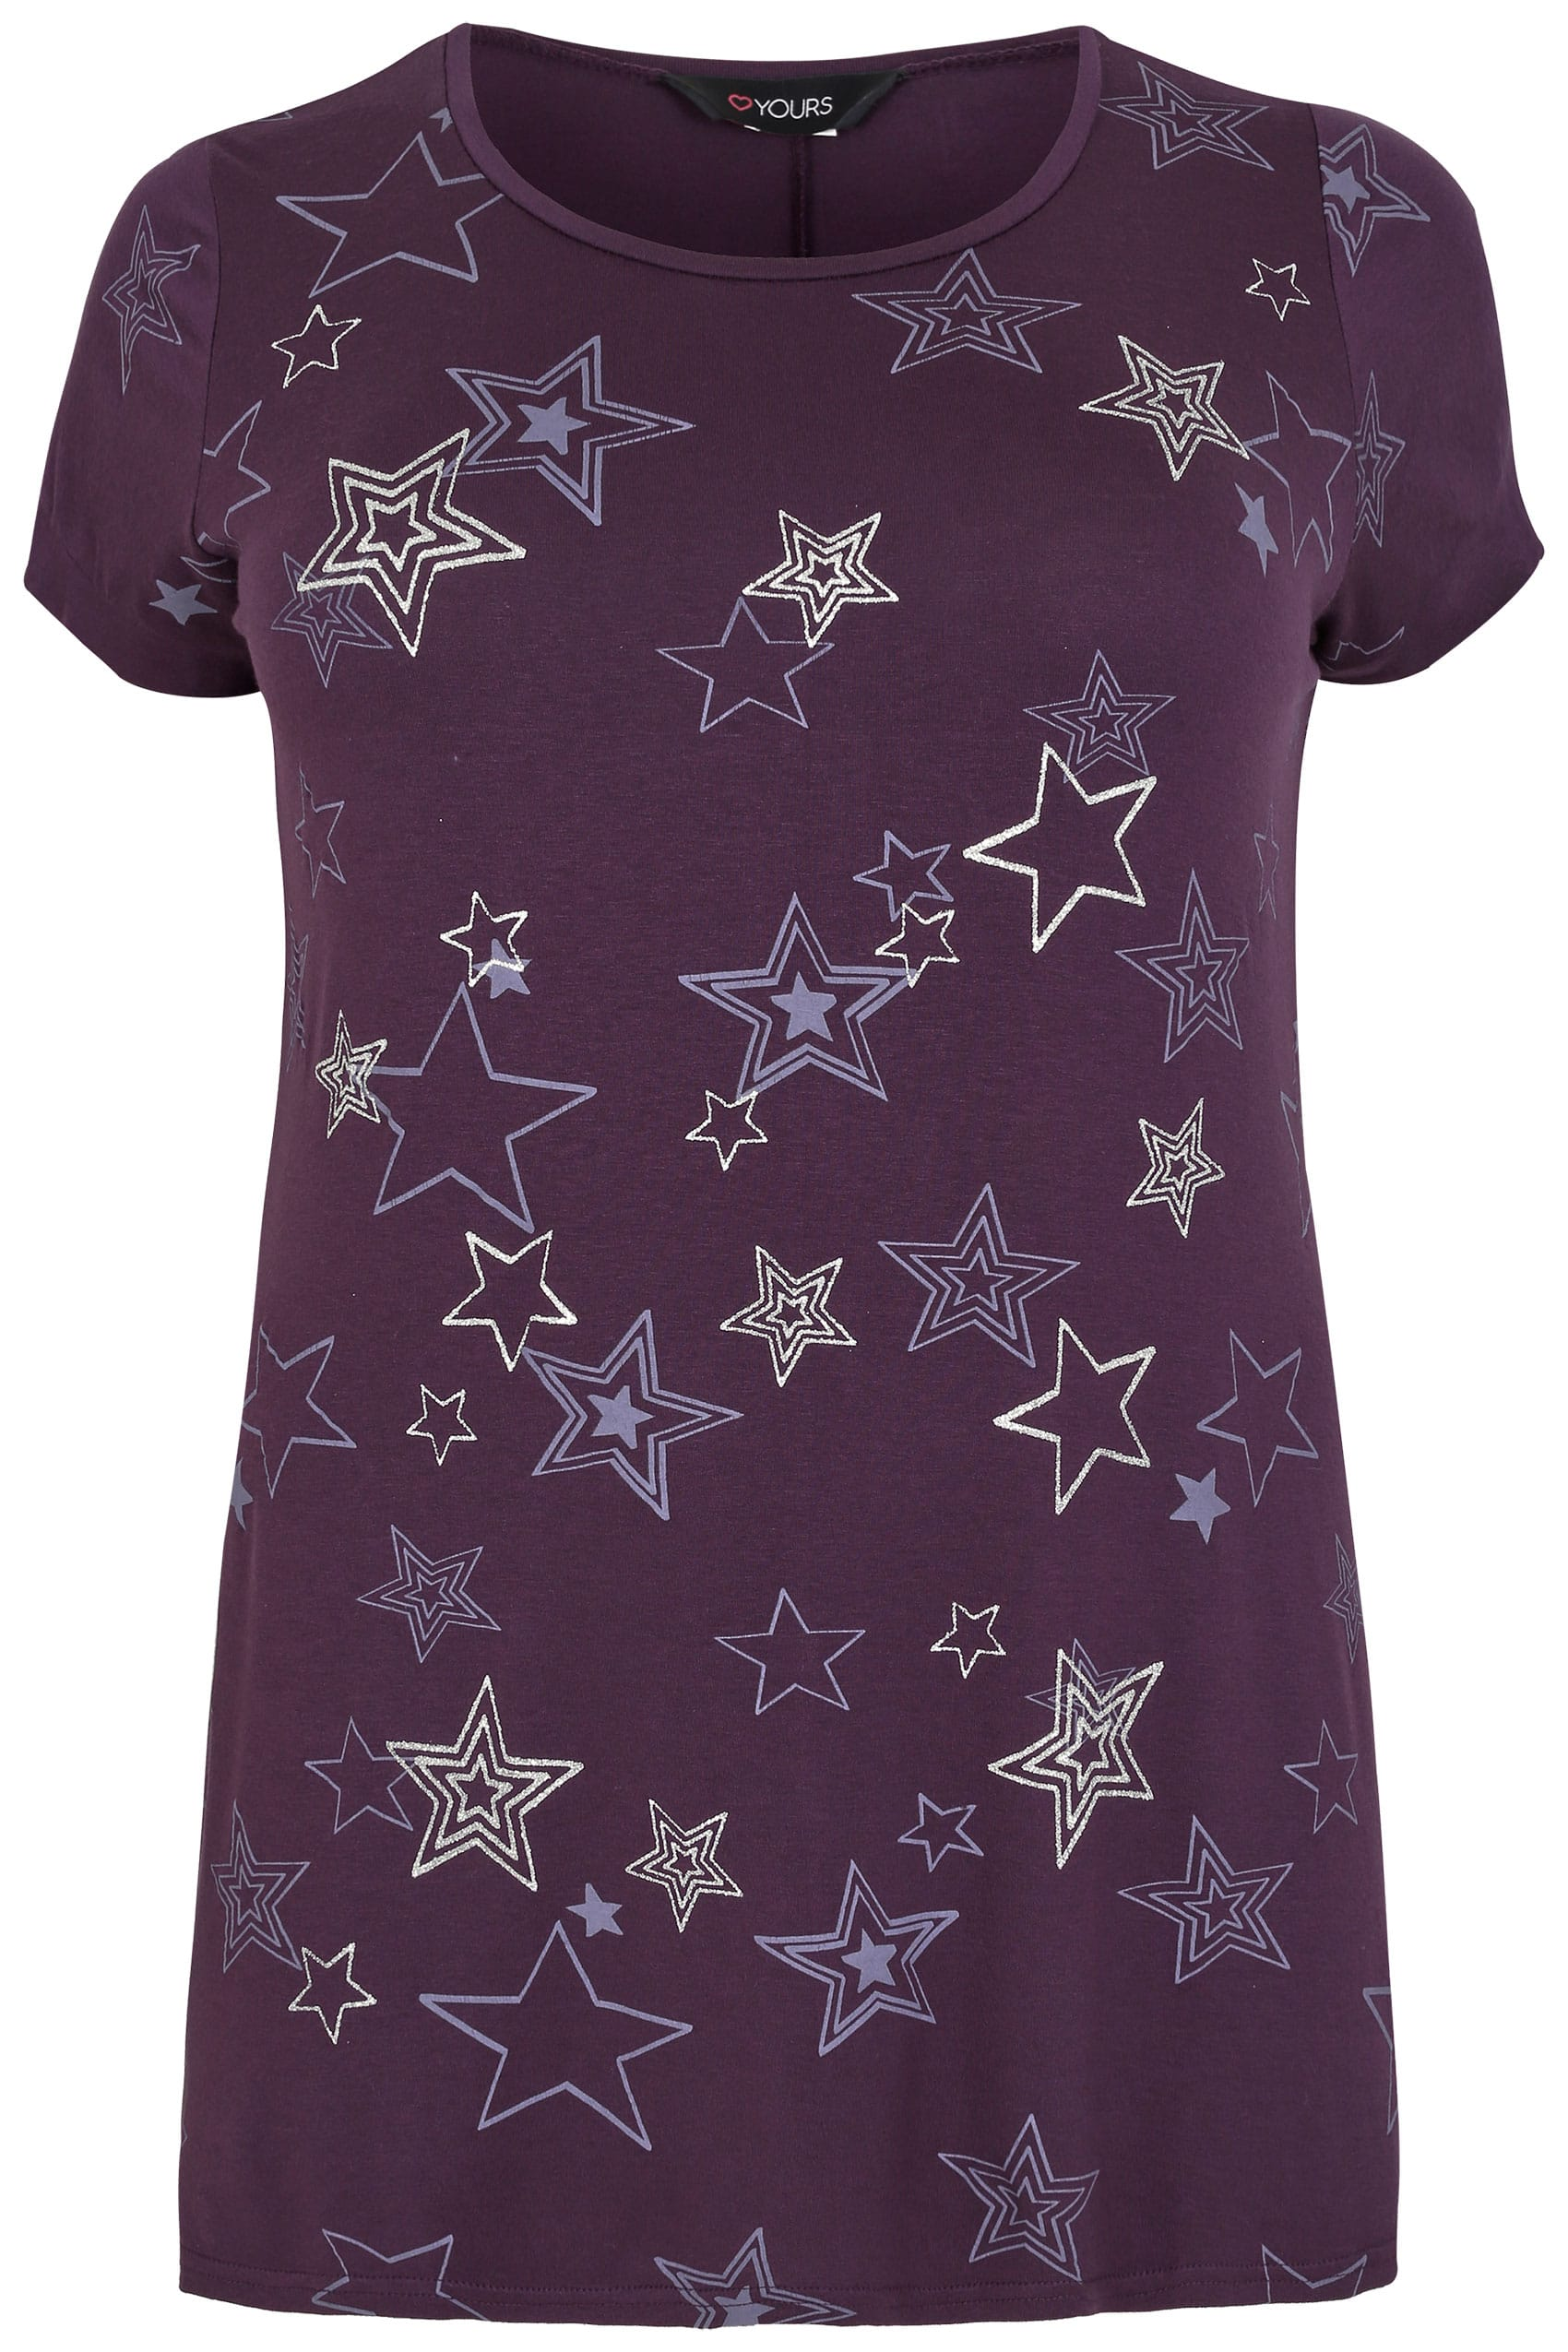 Purple glitter star print t shirt plus size 16 to 36 for Quick print t shirts